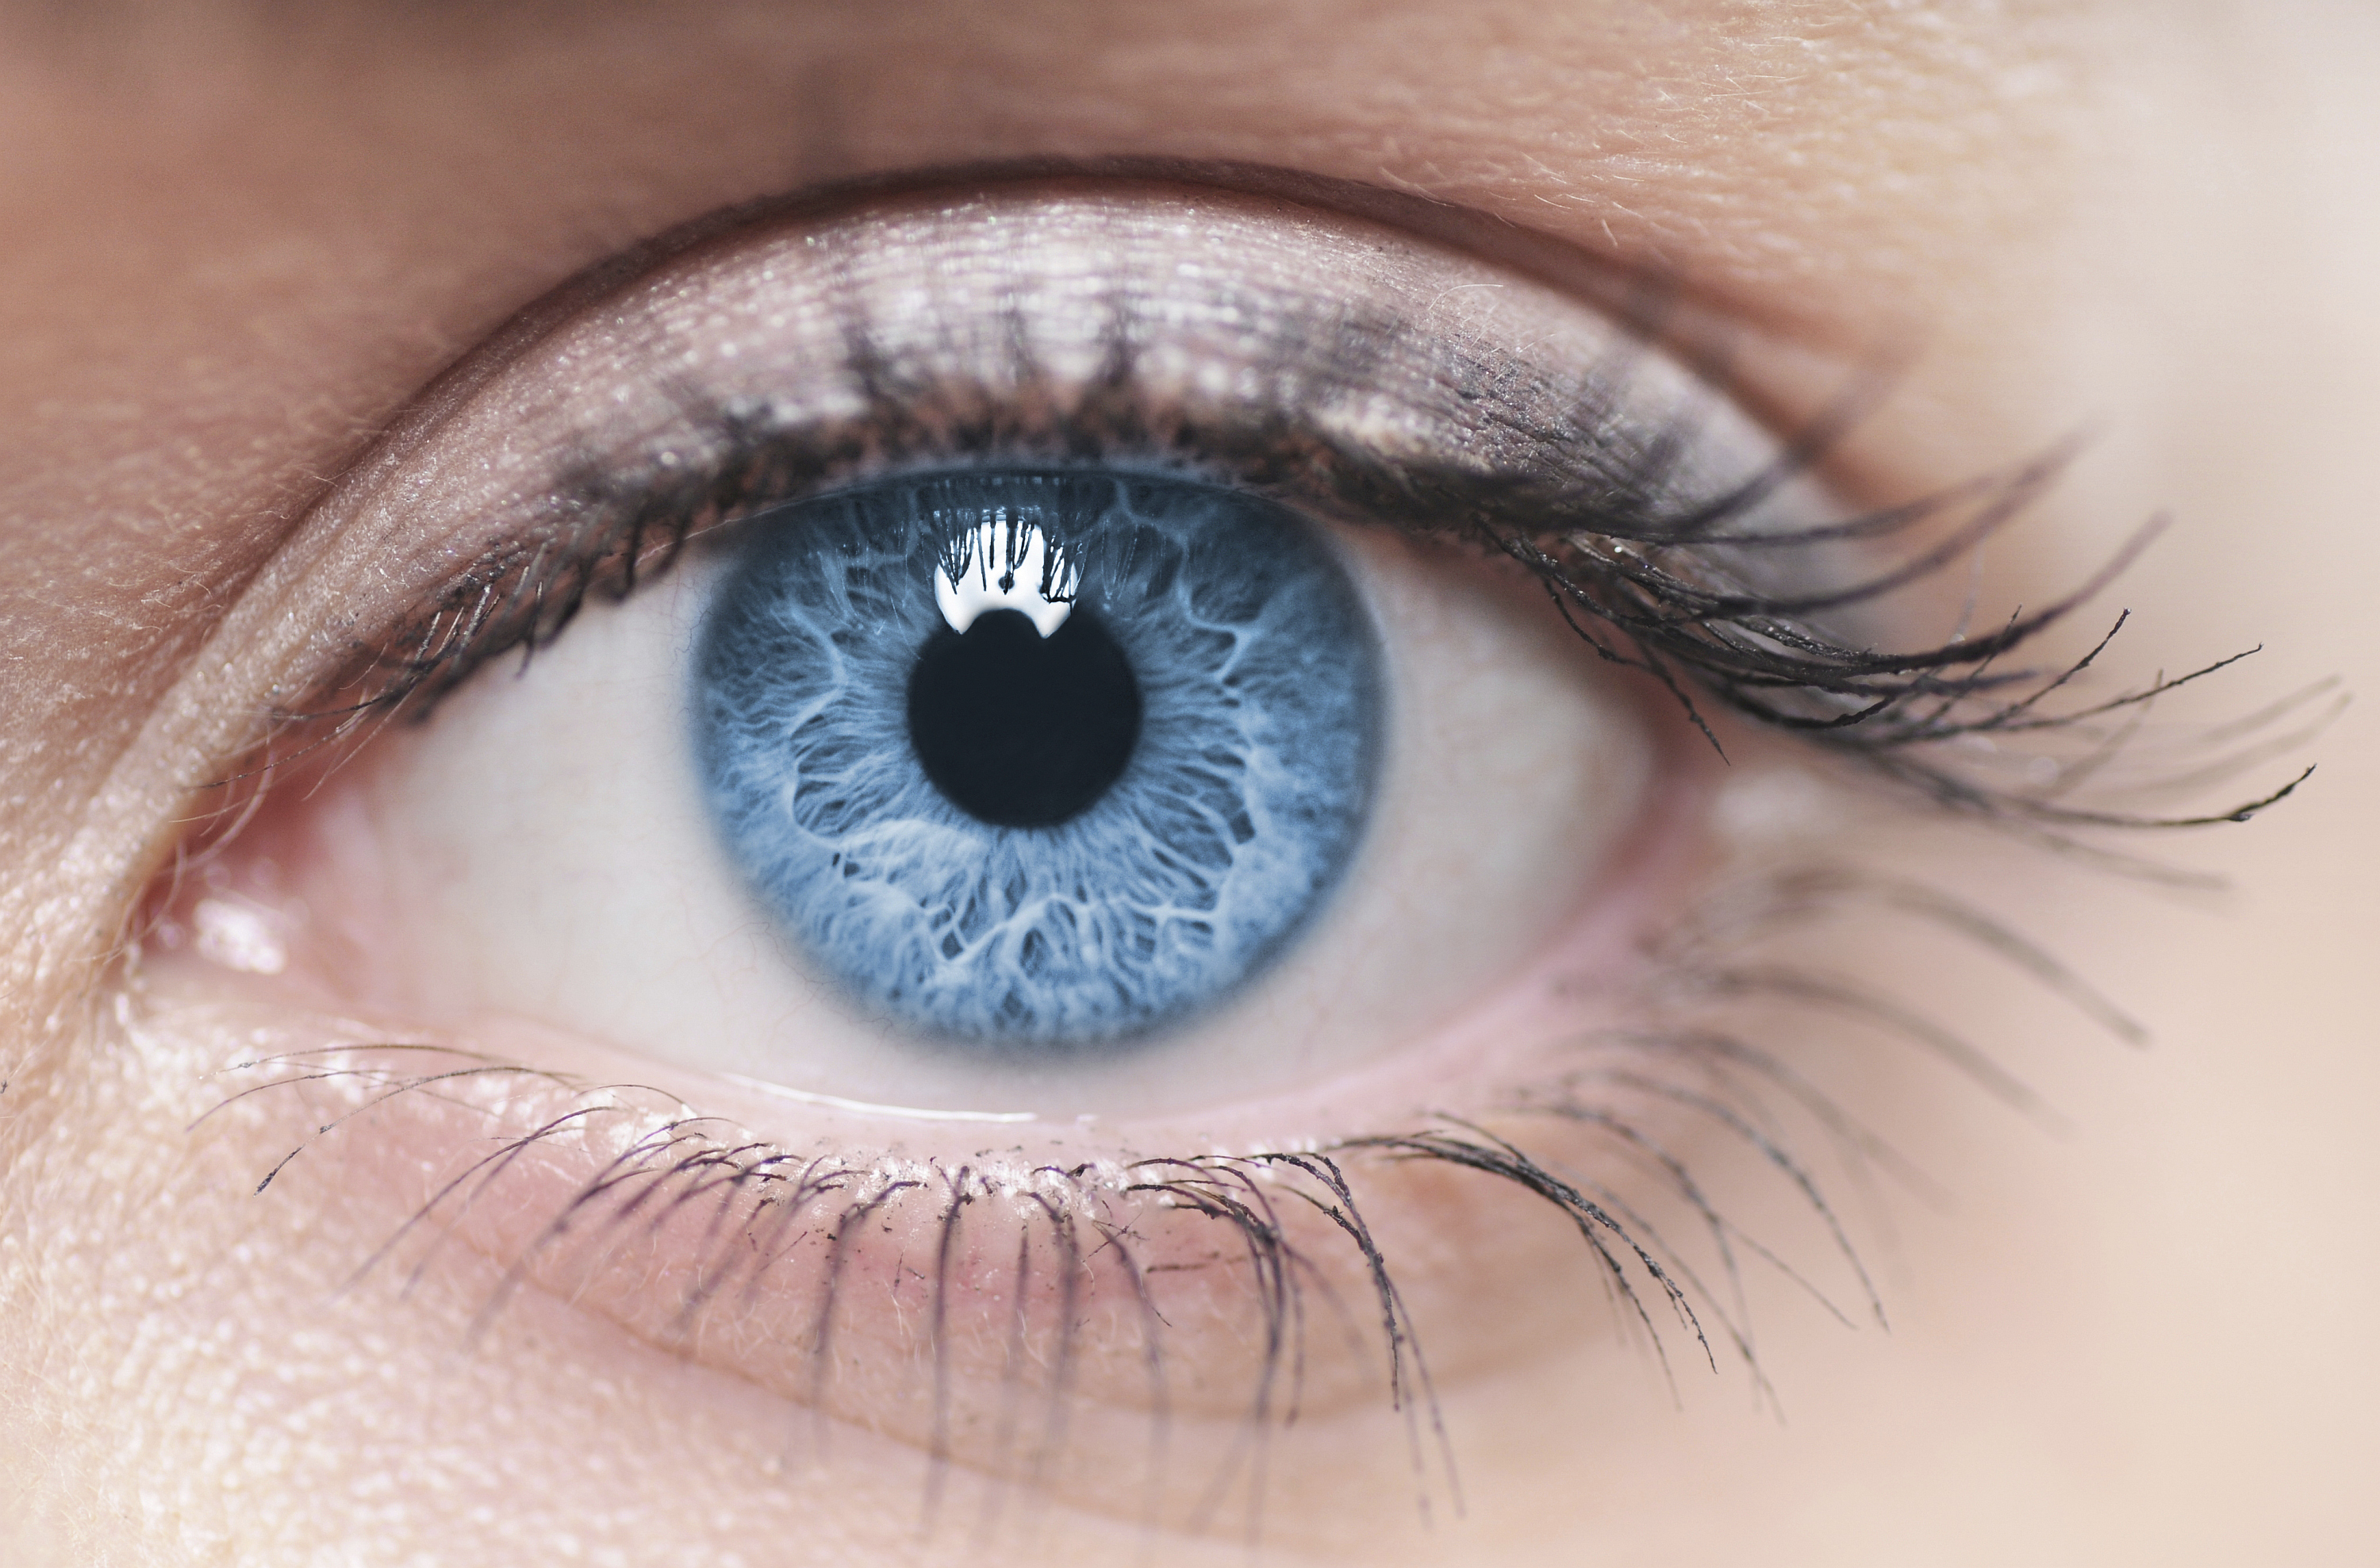 Scientists Have Successfully Grown Artificial Corneas And Transplanted Them Into Living Eyes